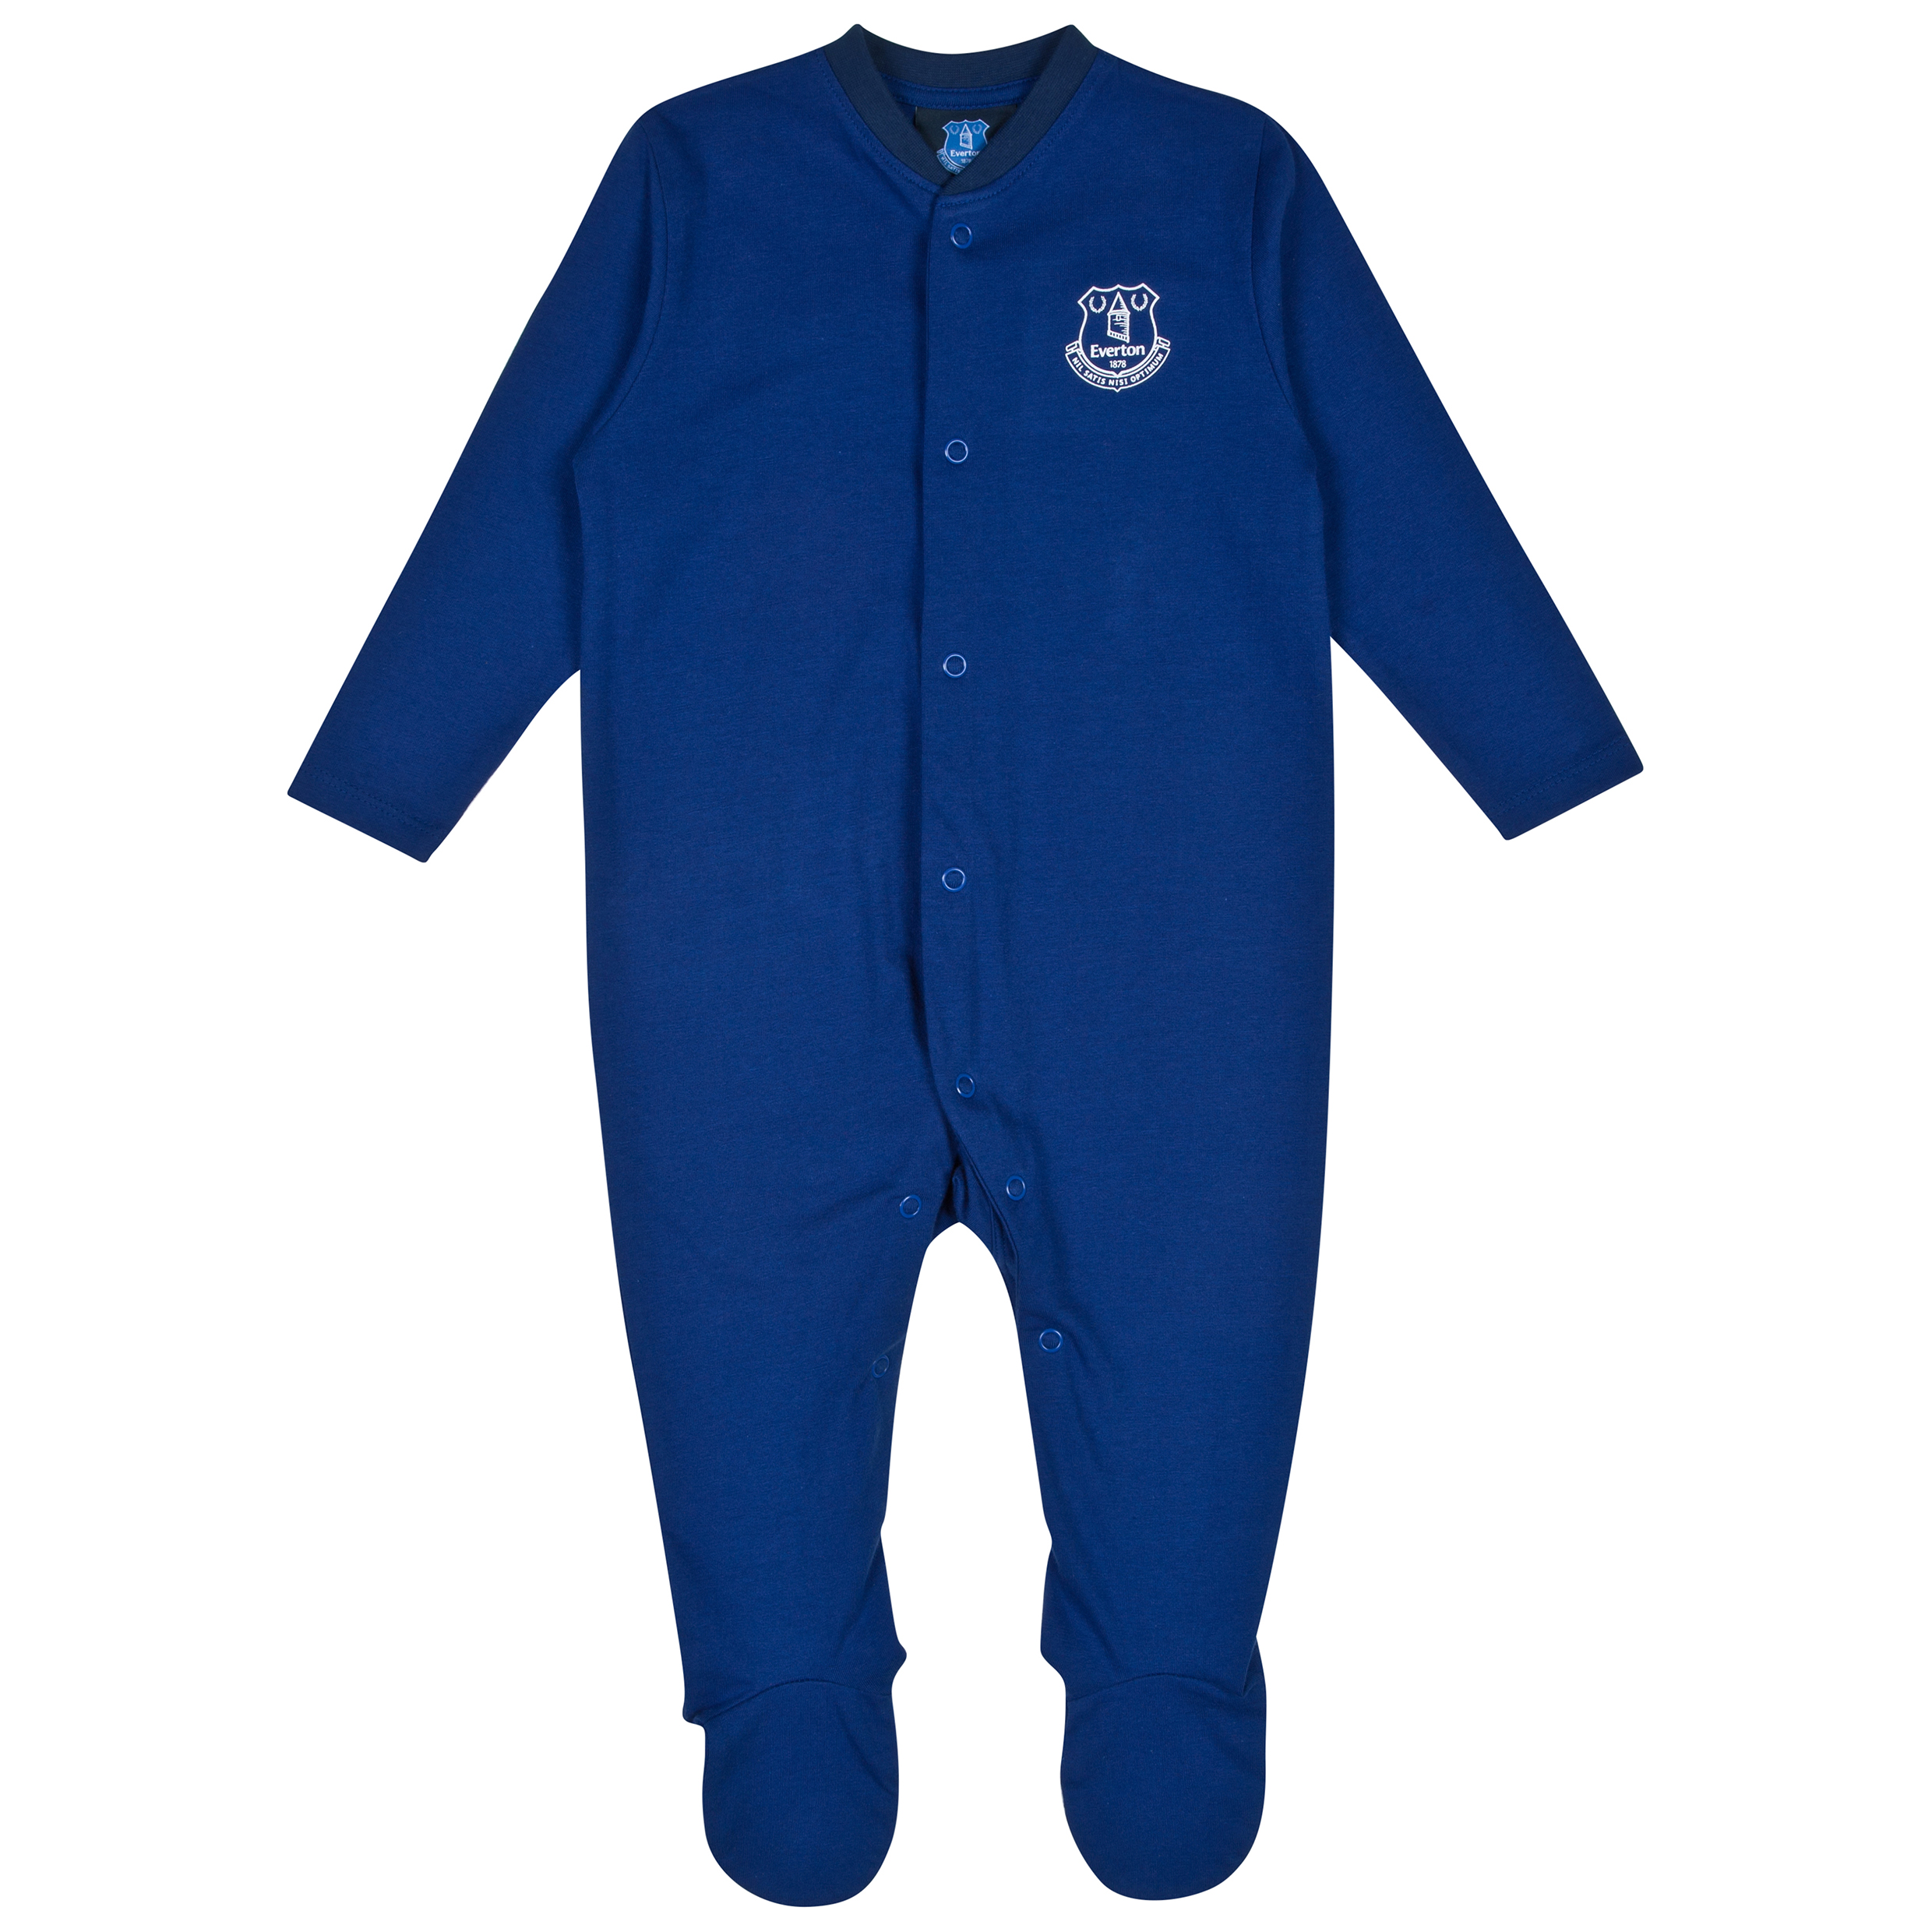 Everton 14/15 Sleepsuit - Everton Blue - Baby